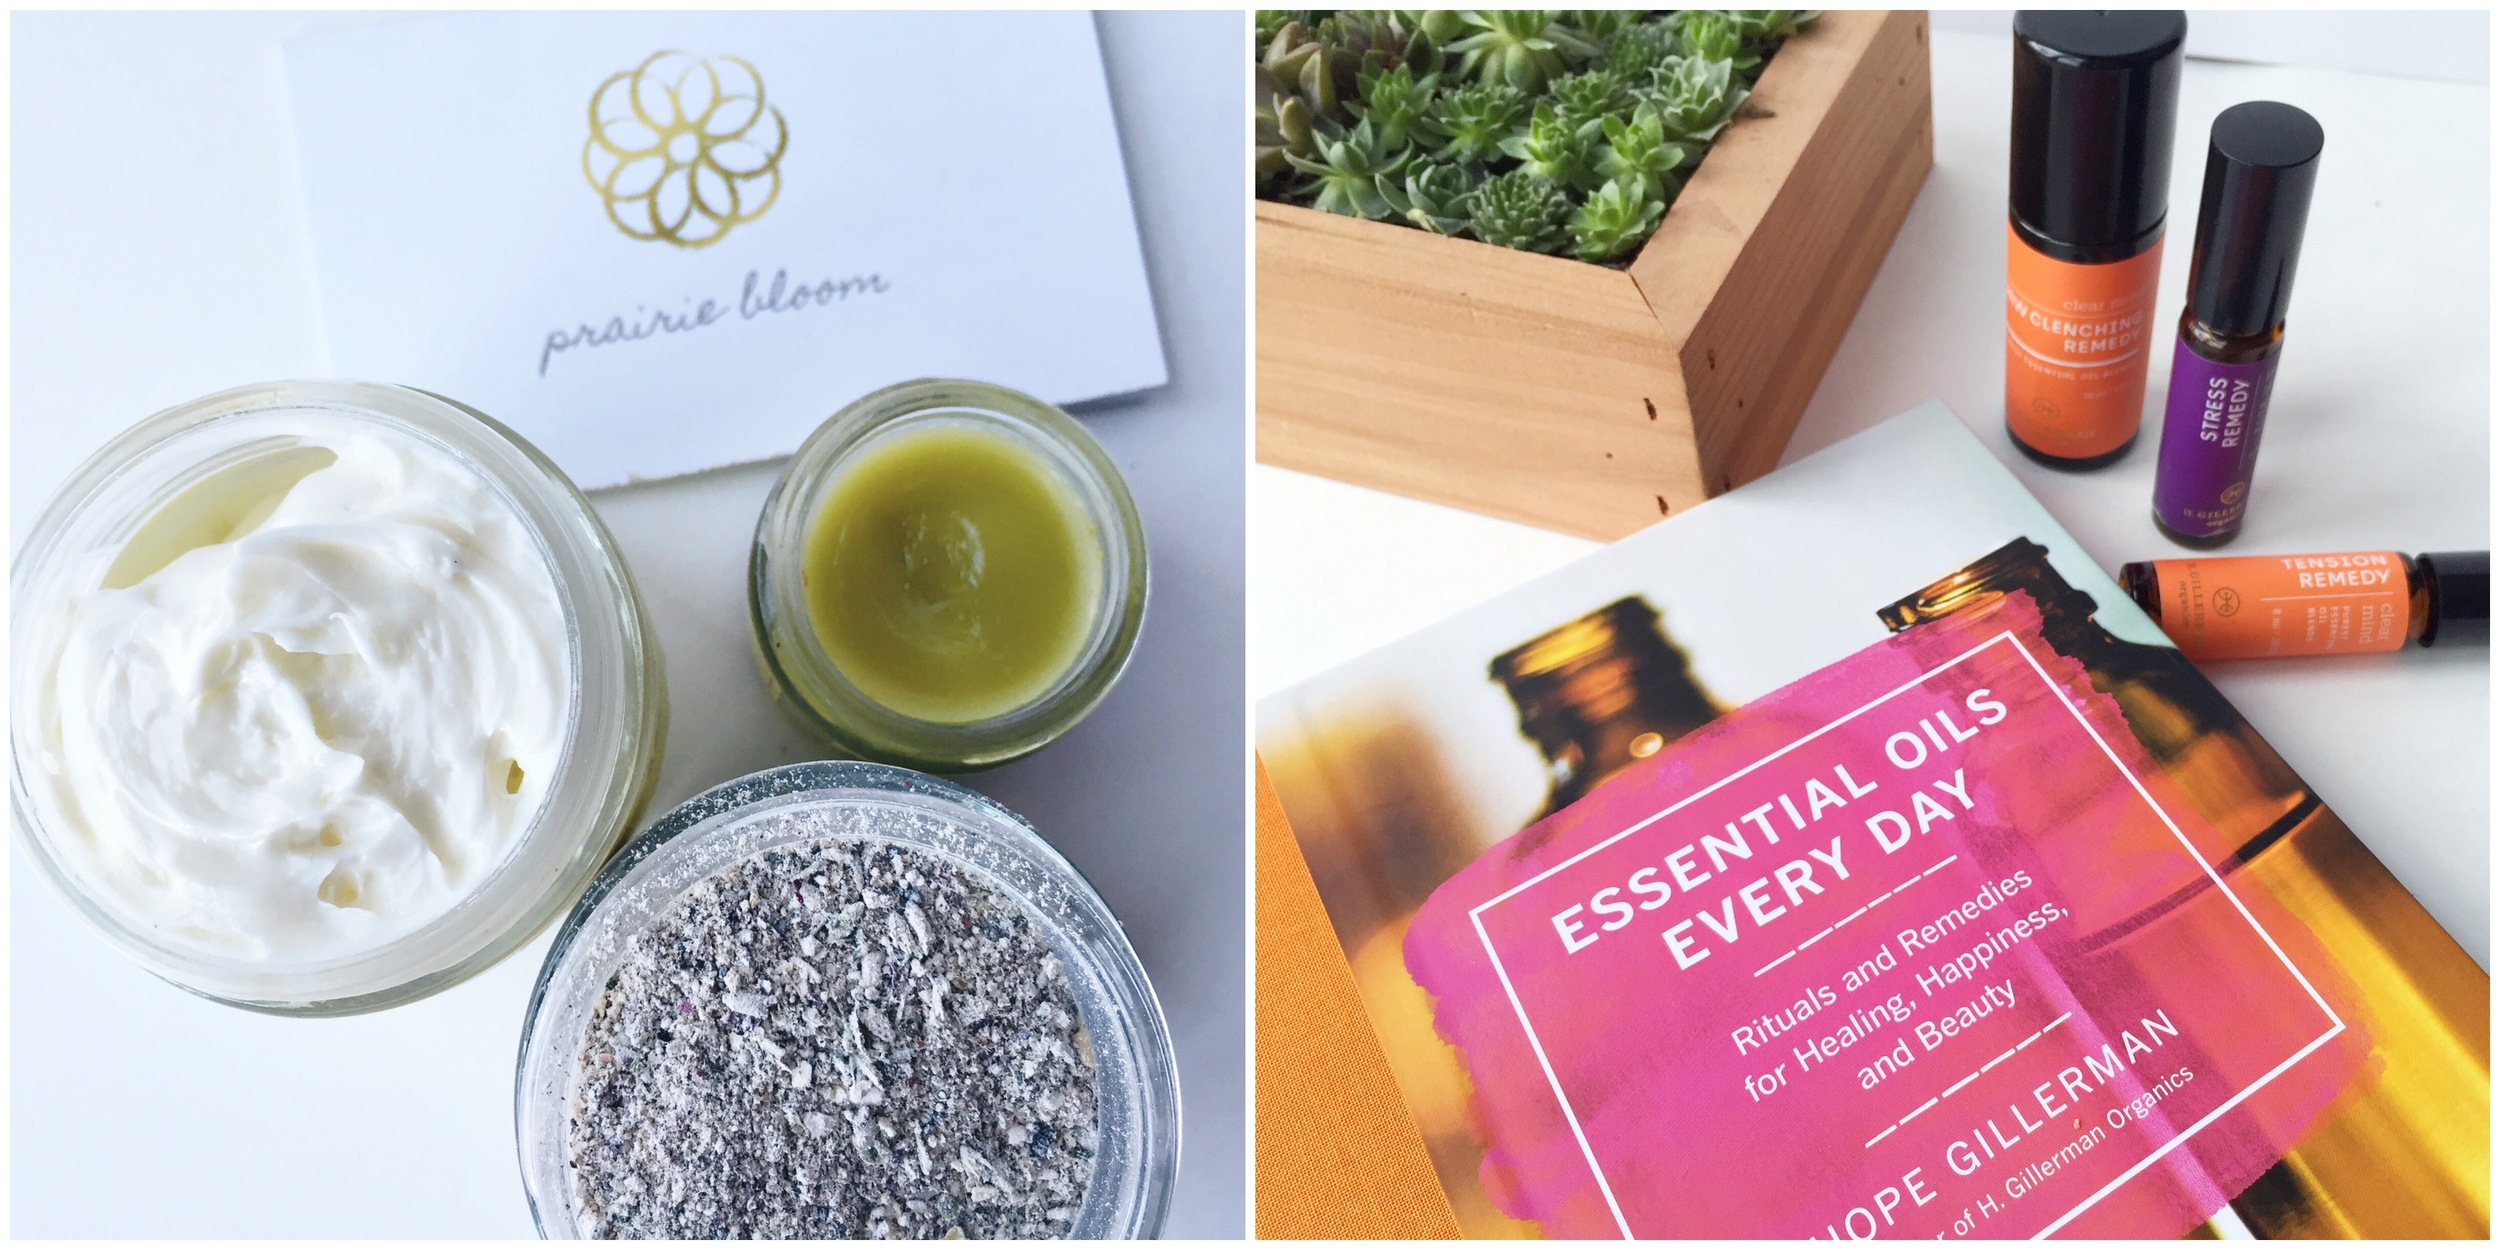 Prairie Bloom Body Care and Hope Gillerman's Book Release! | janny: organically.